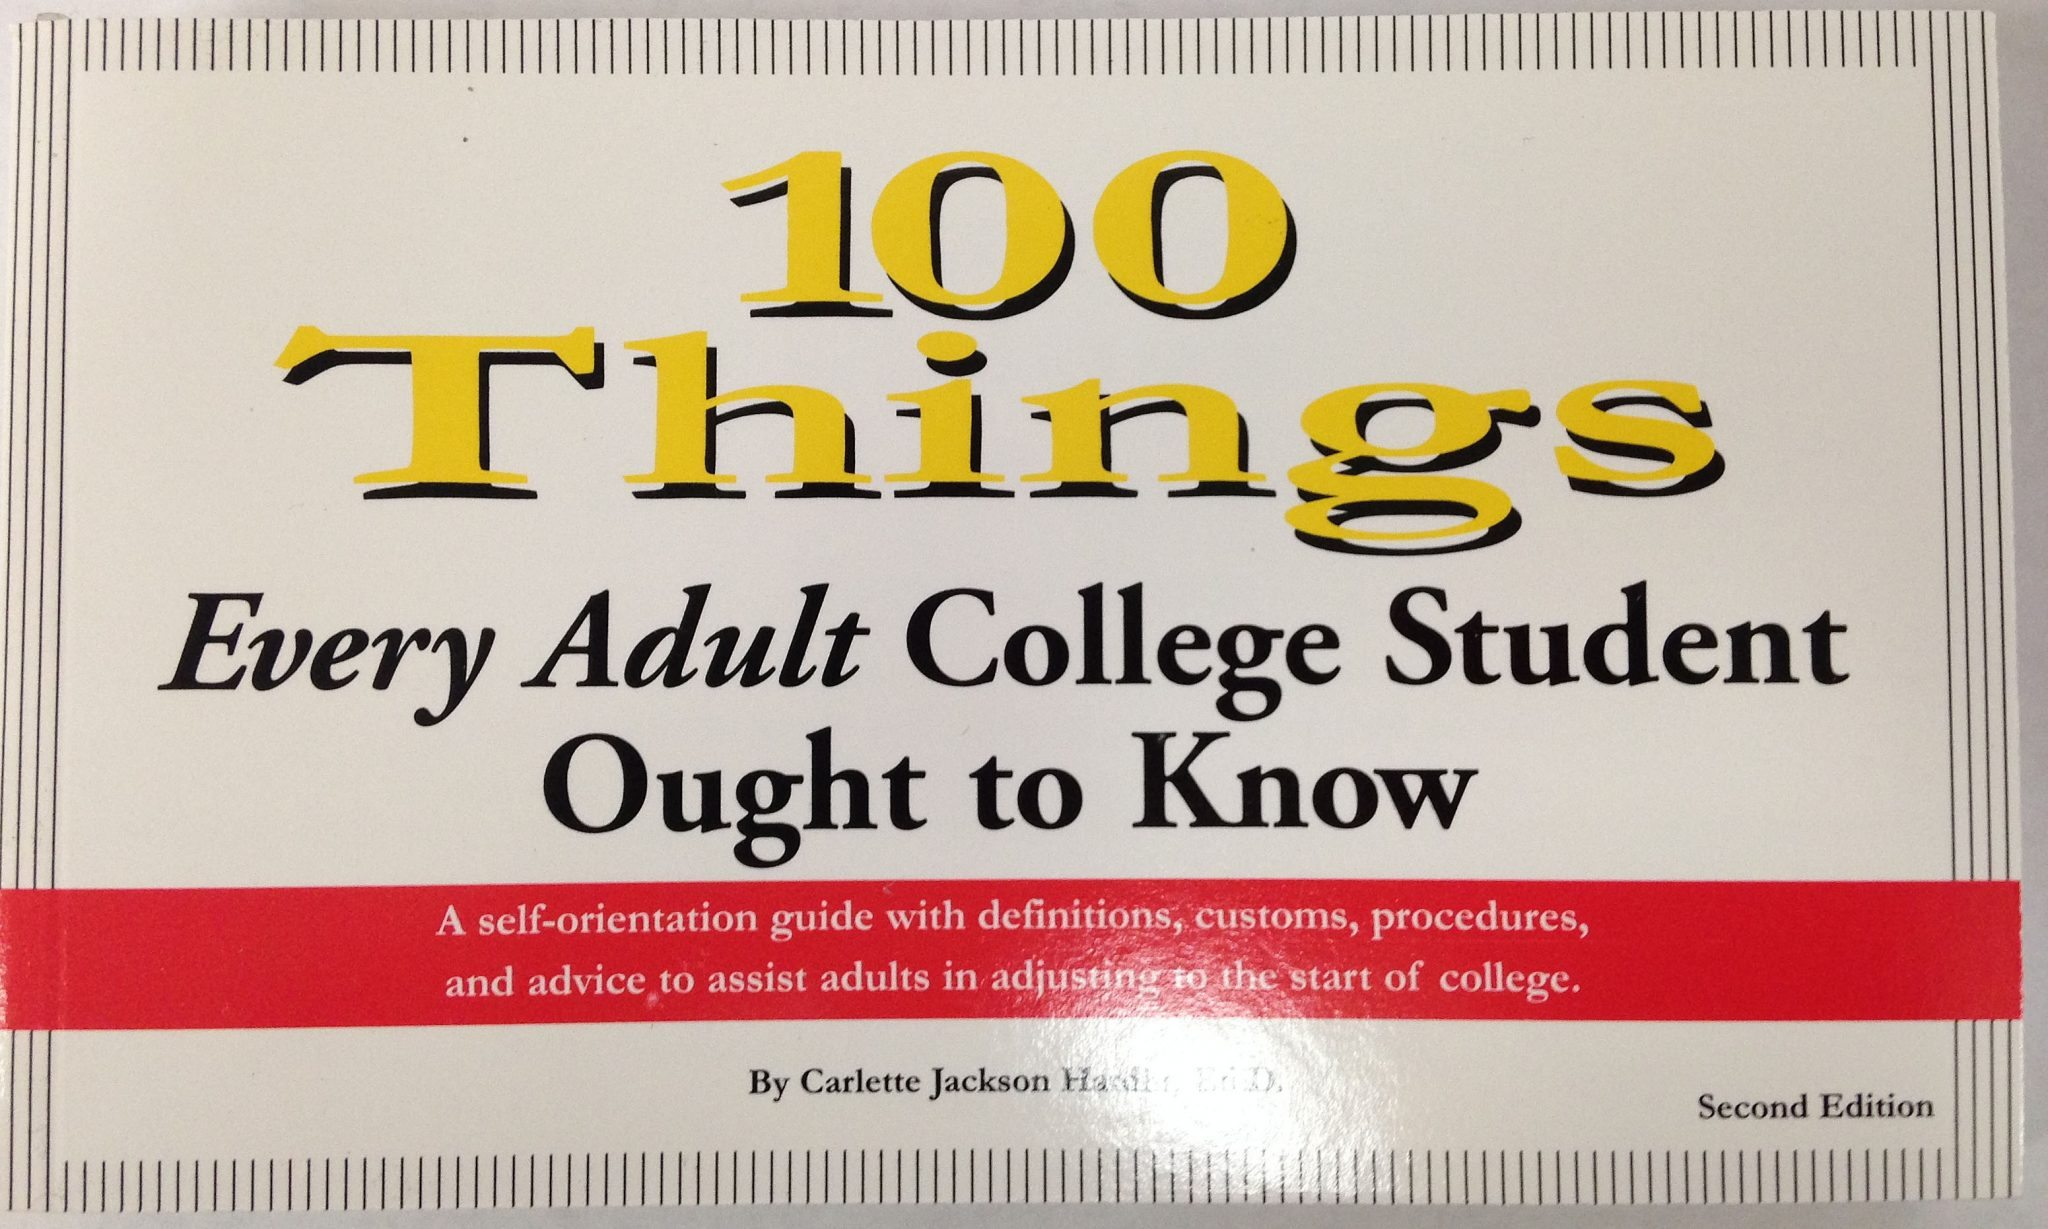 UHMC Offers Free Book & College Advising for Adult Learners